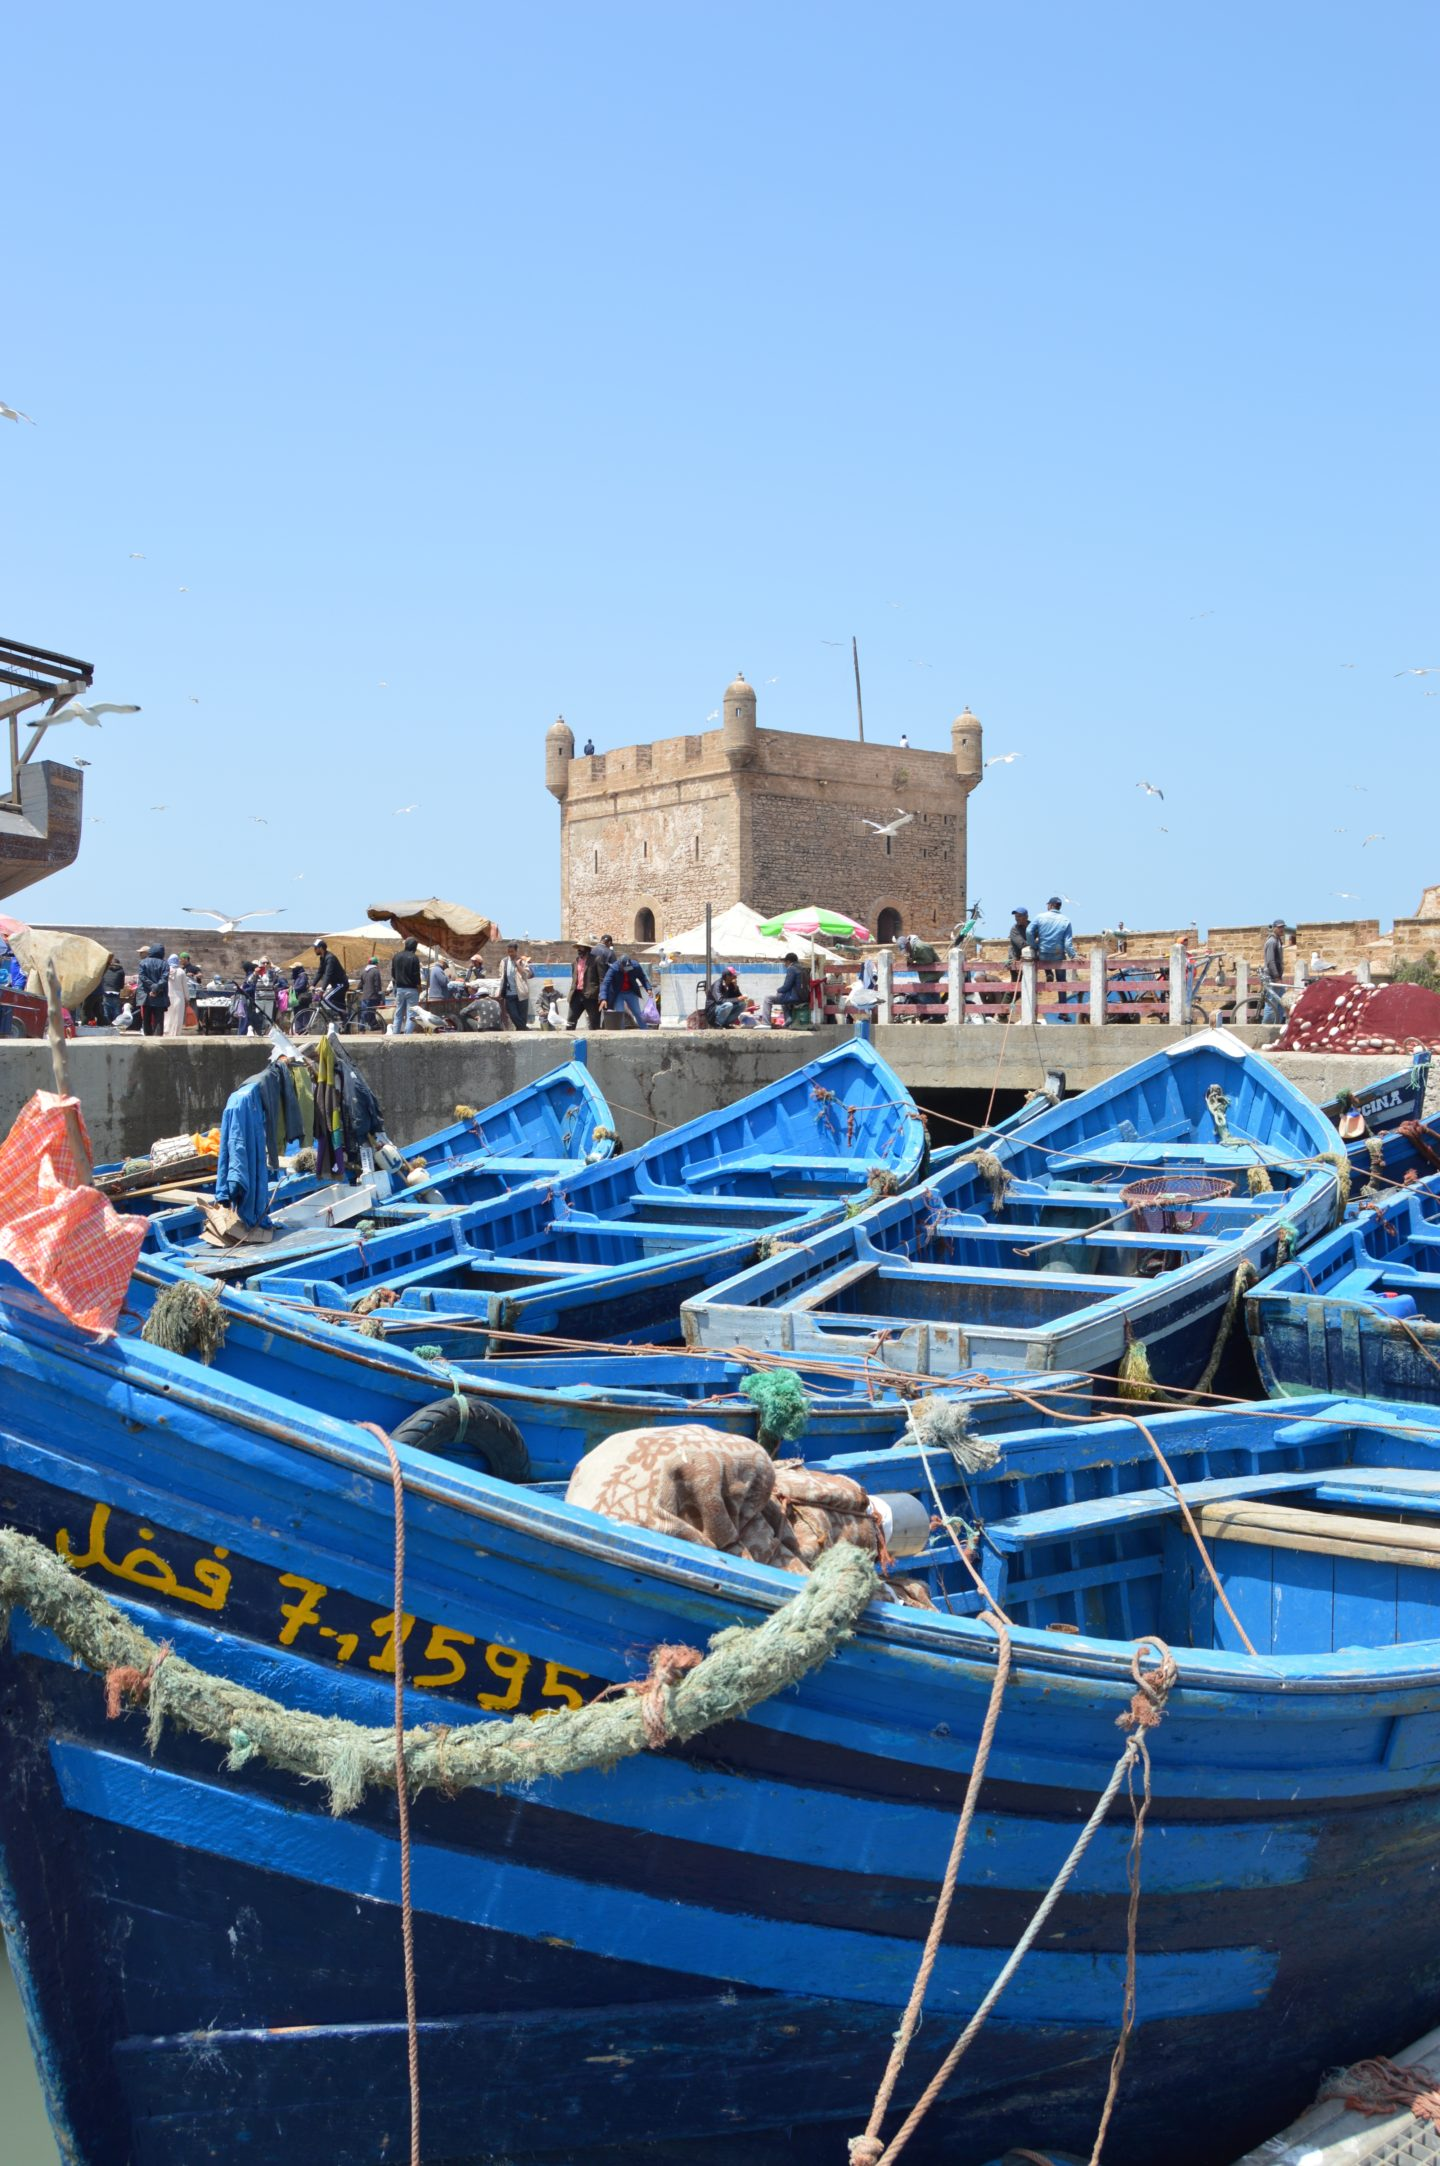 A gorgeous blue pop of color in an otherwise crisp white and tan coastal town in Morocco. The boats are all ready to go for the fishing industry that takes place from this city